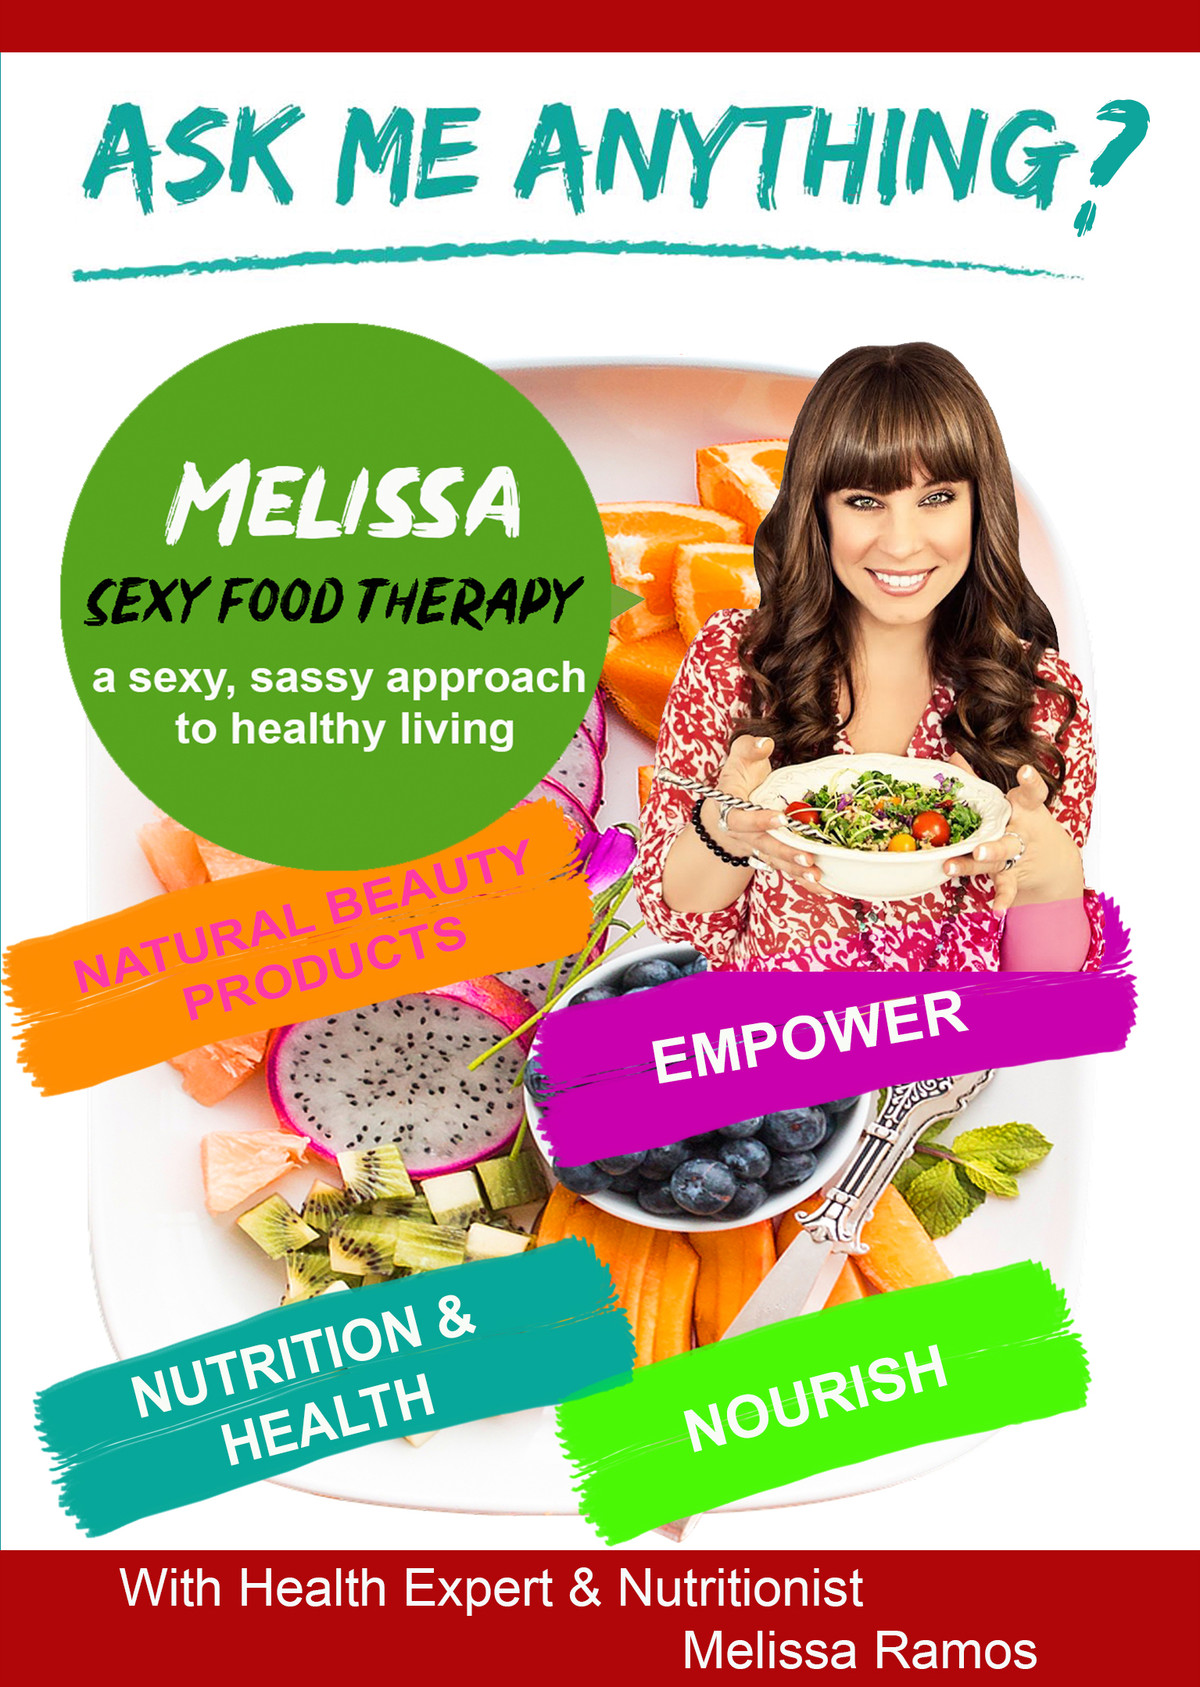 K4842 - Ask Me Anything about Sexy Food Therapy with Health Expert Melissa Ramos  - Learn How To Eat Right & Improve Your Digestive System